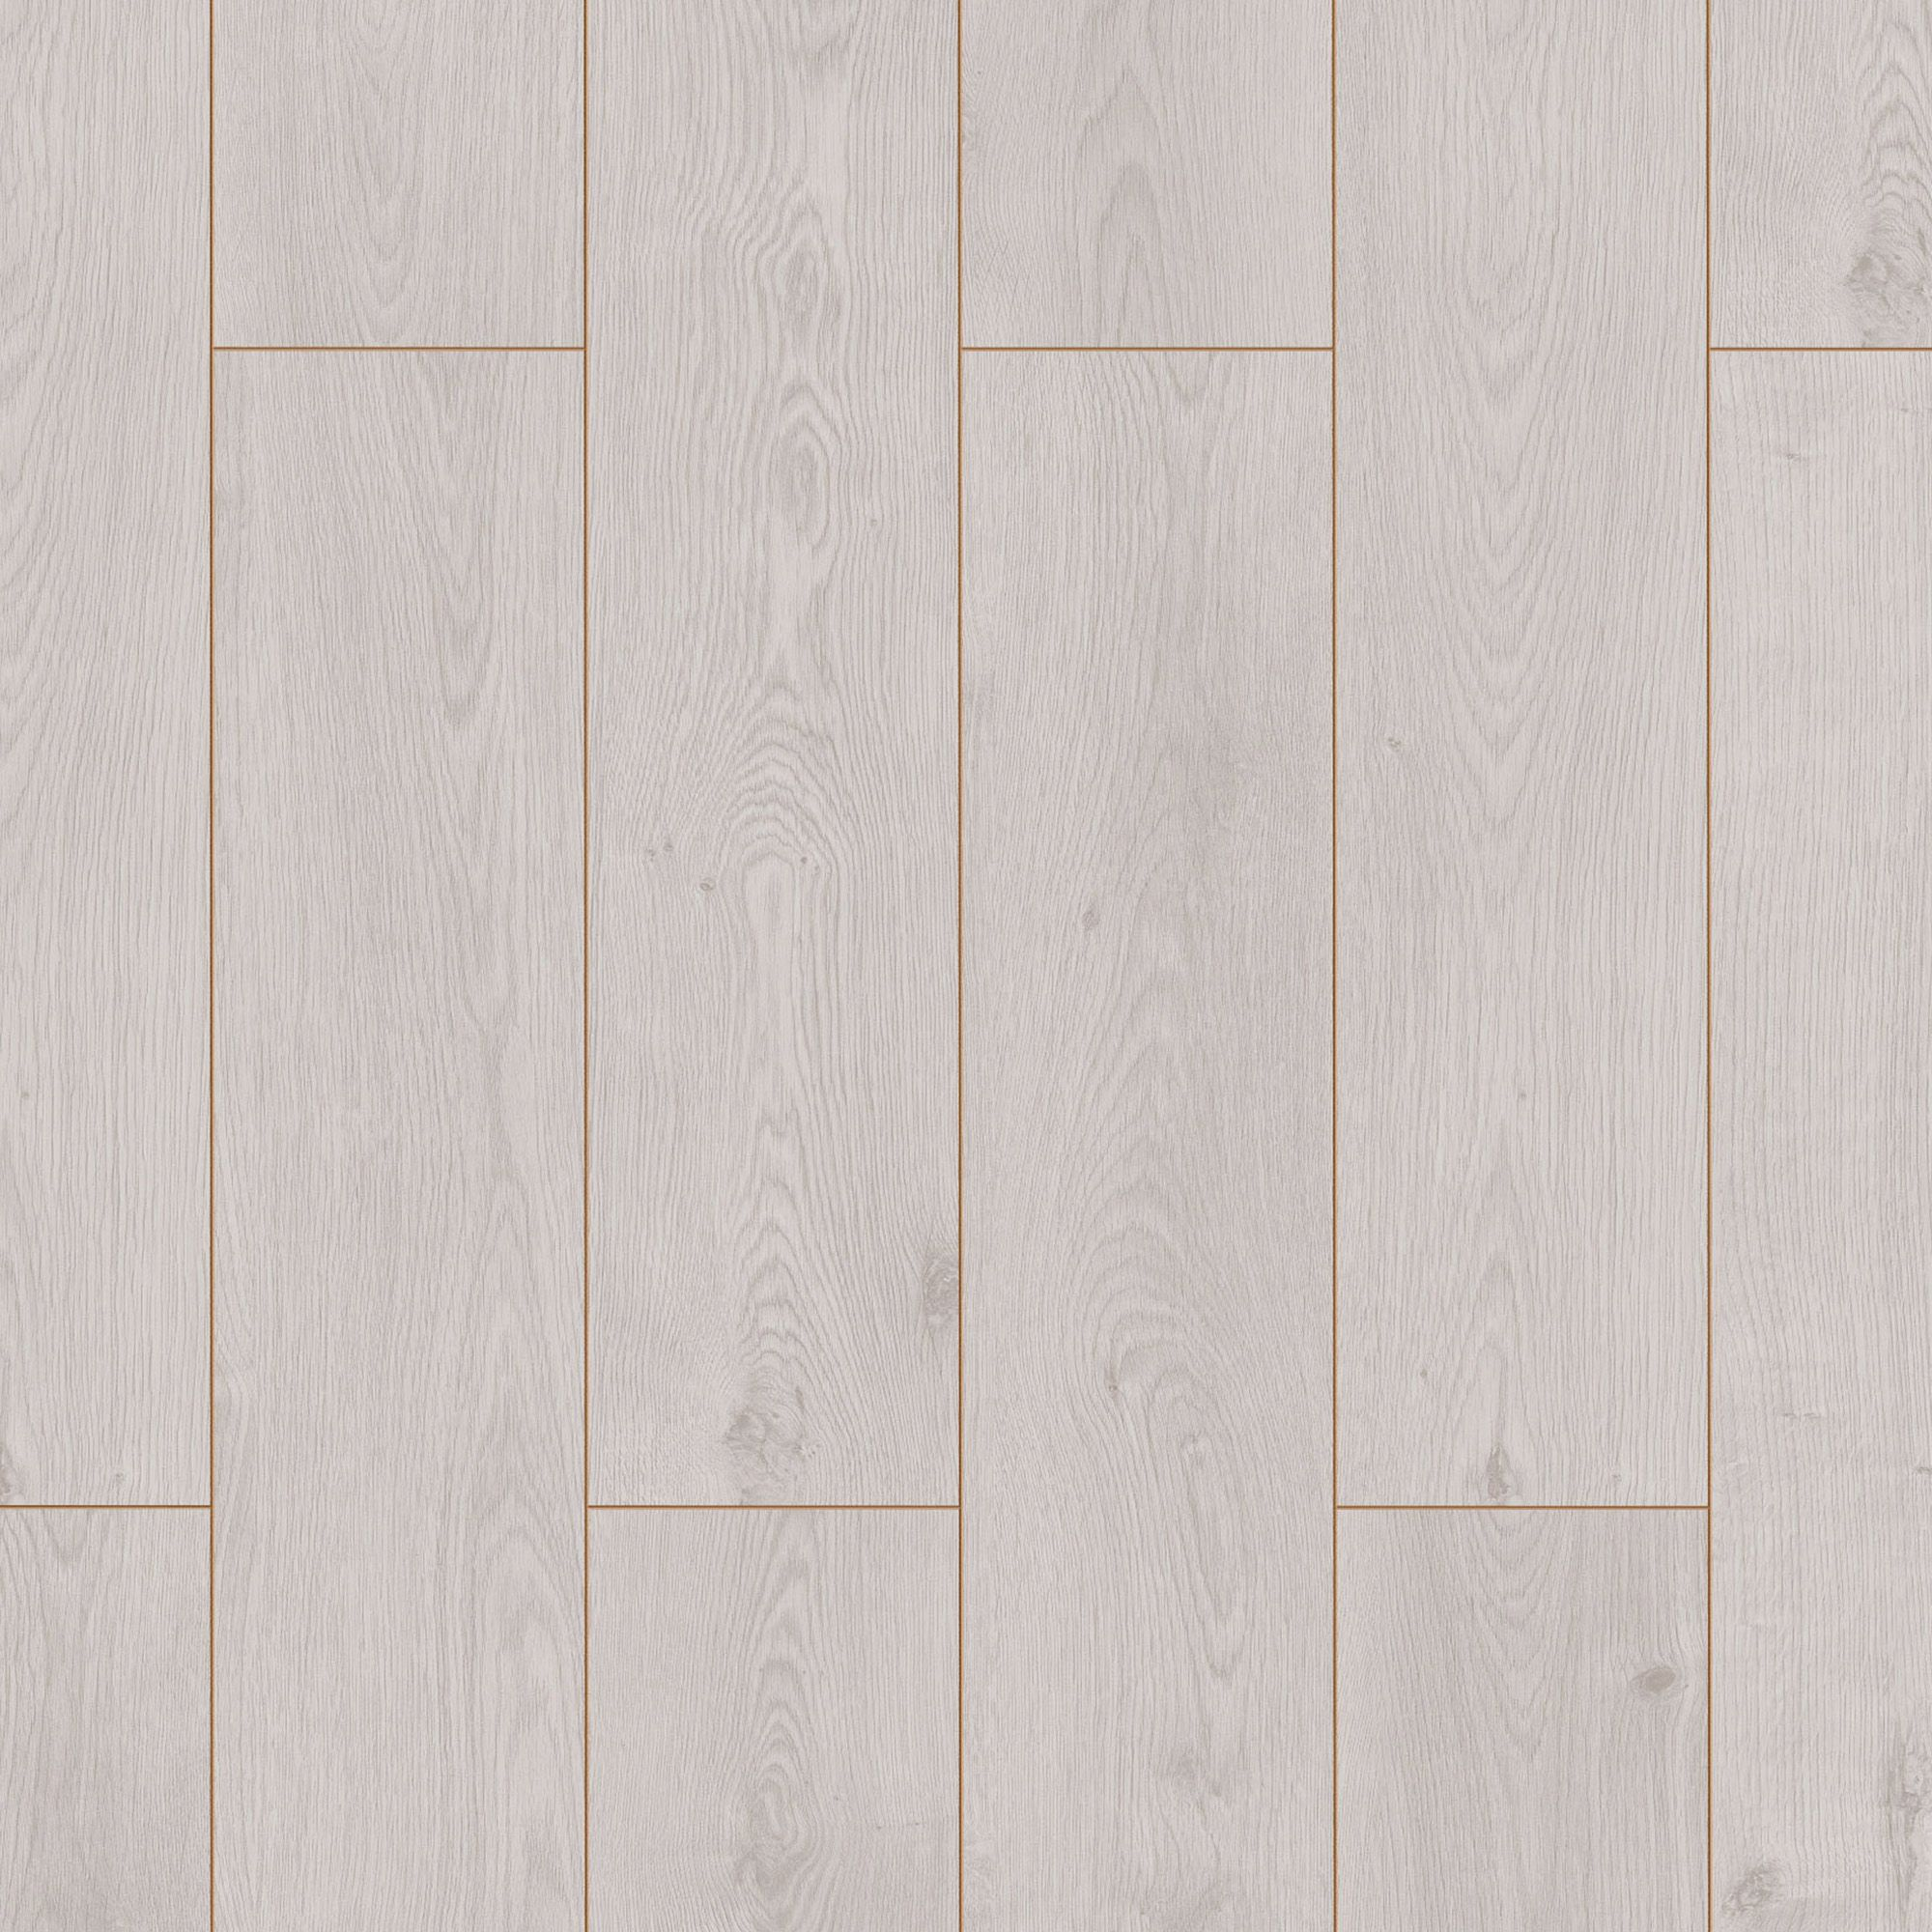 Overture arlington white oak effect laminate flooring for White laminate flooring